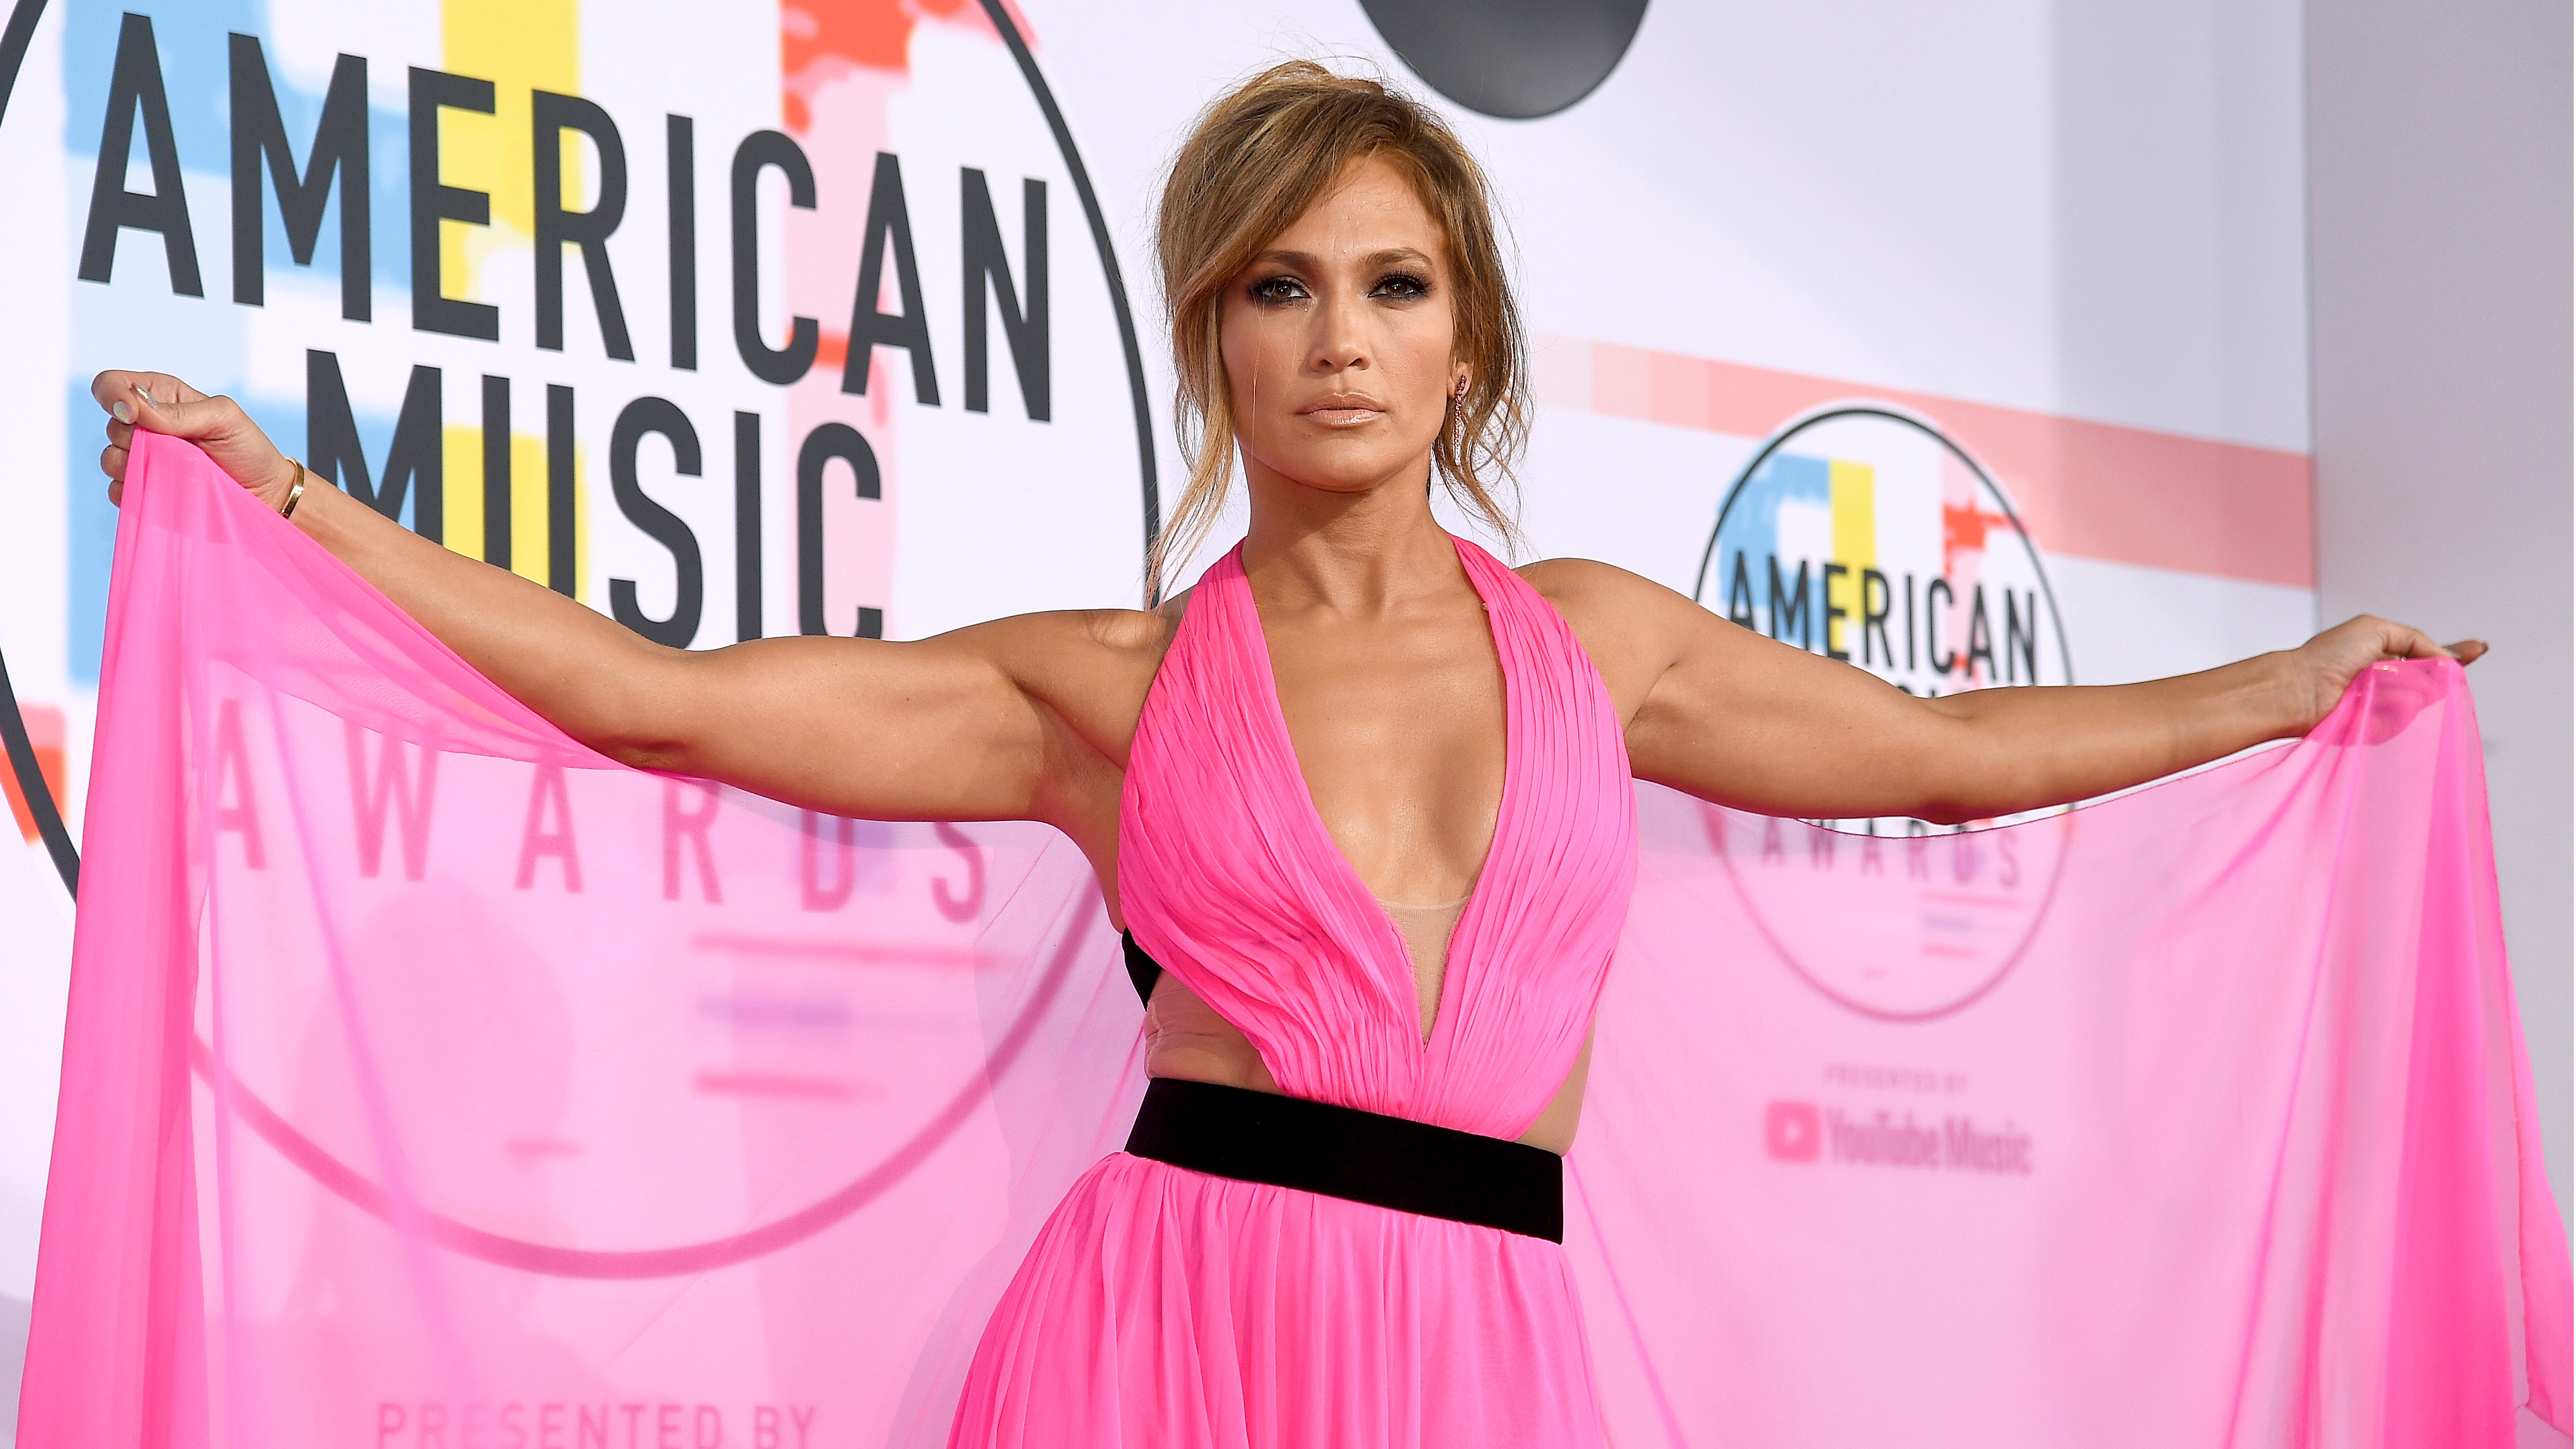 Wendy Williams says Jennifer Lopez should pull out of the Super Bowl after Oscar snub